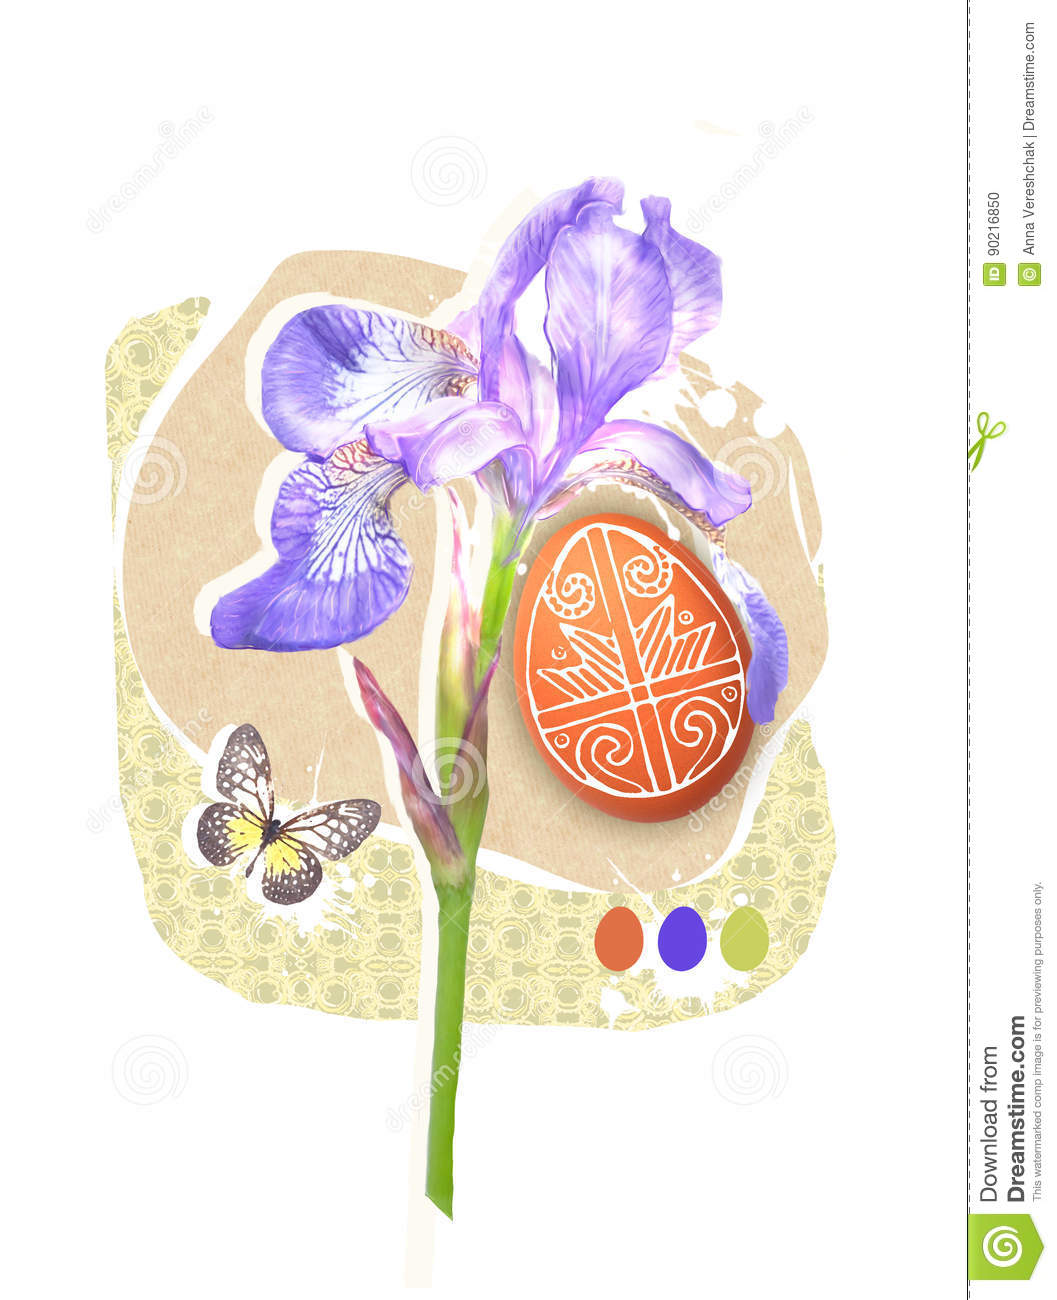 Easter greeting card template with paschal egg butterfly and spring easter greeting card template with paschal egg butterfly and spring iris flower easter design izmirmasajfo